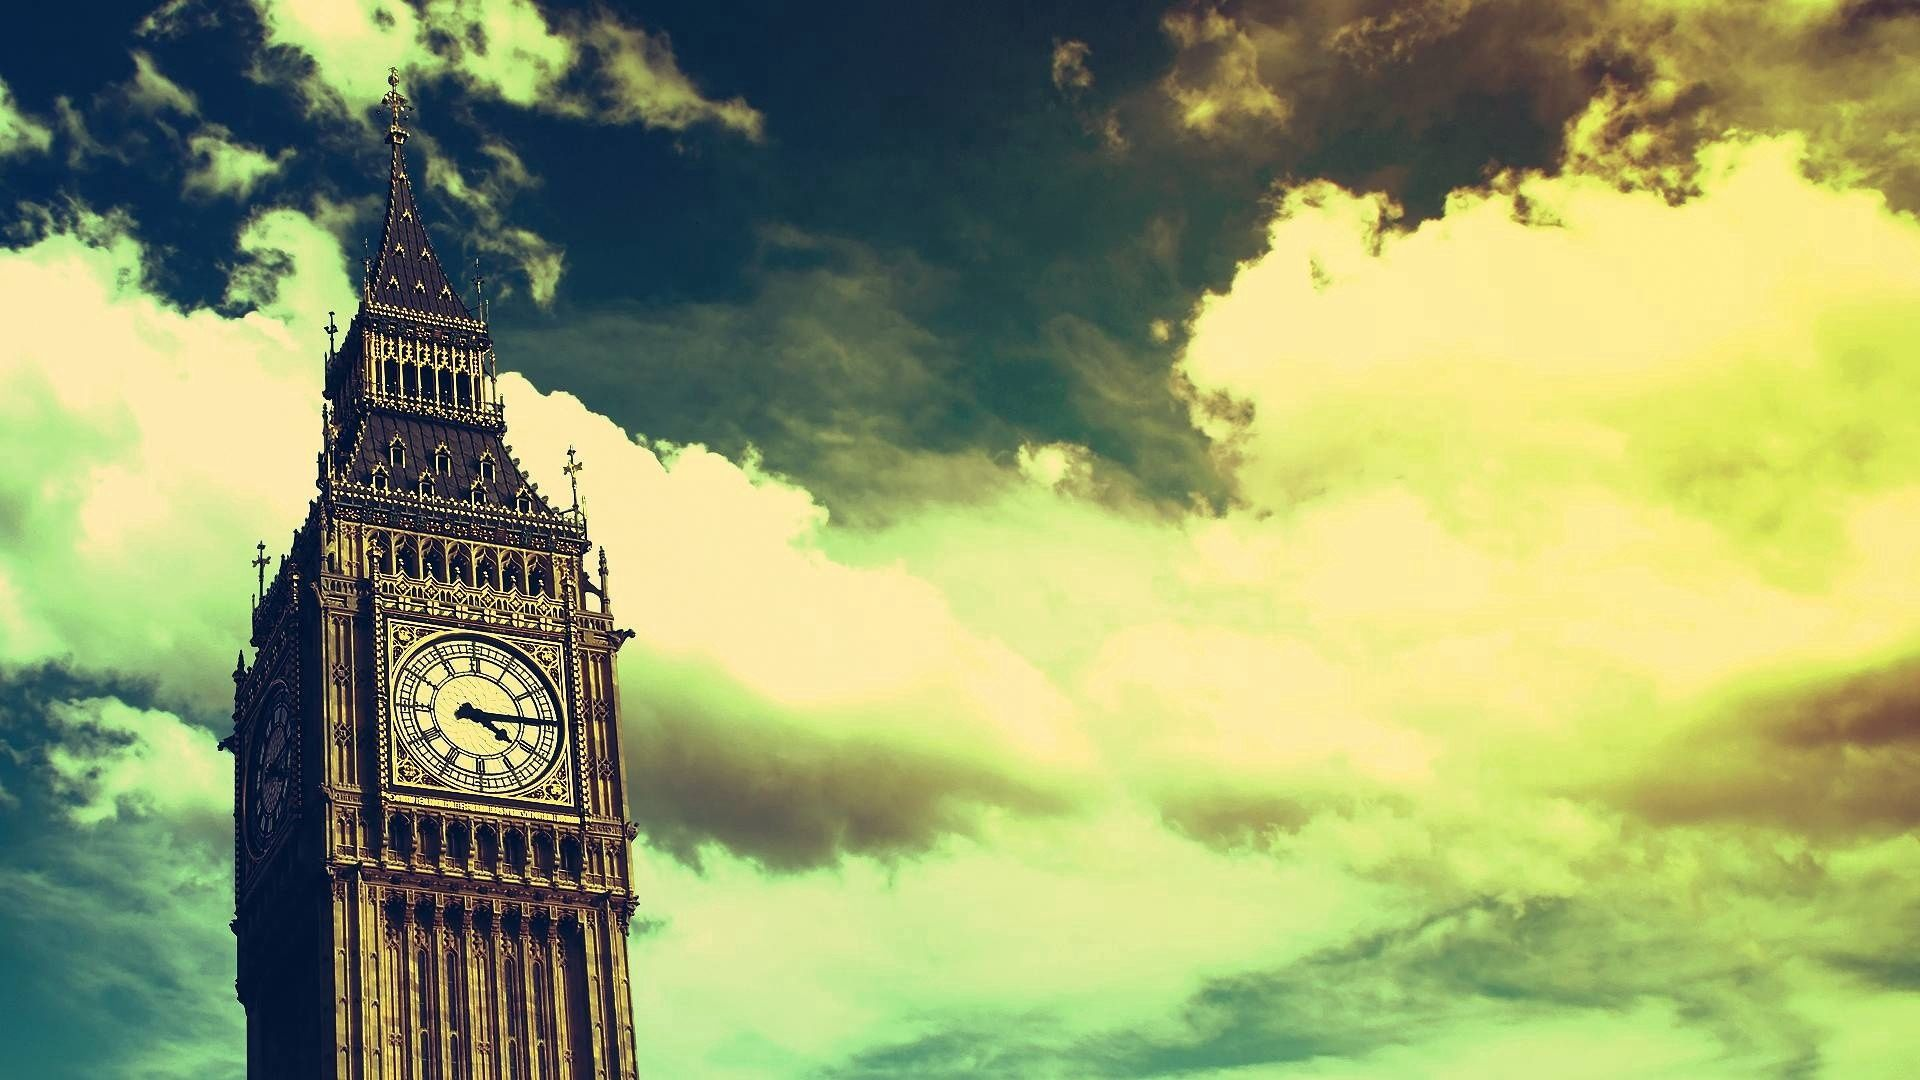 92161 download wallpaper Big Ben, London, Sky, Clouds, Cities, Clock screensavers and pictures for free